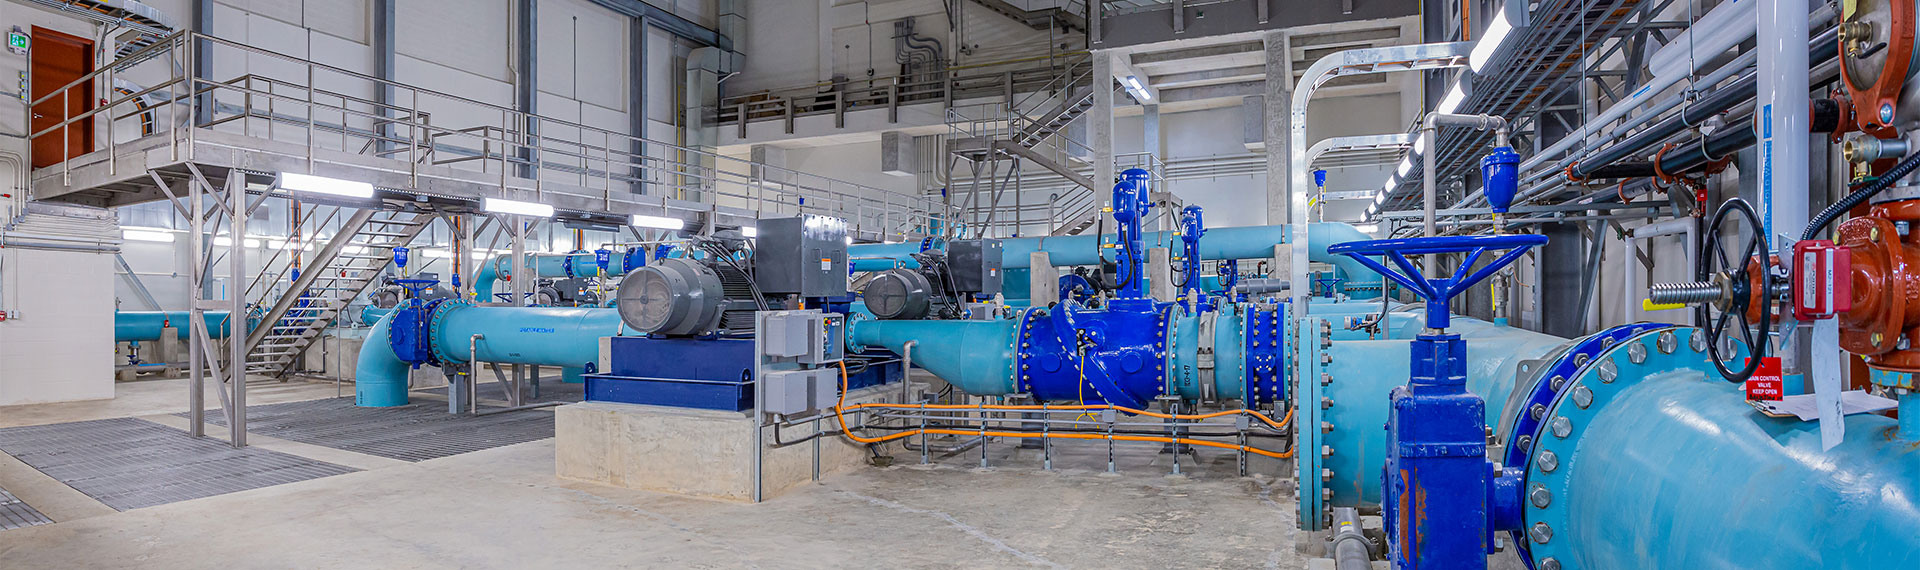 Alloa Reservoie and Pumping Station Interior - OPWA Award 2020 - Project of the Year